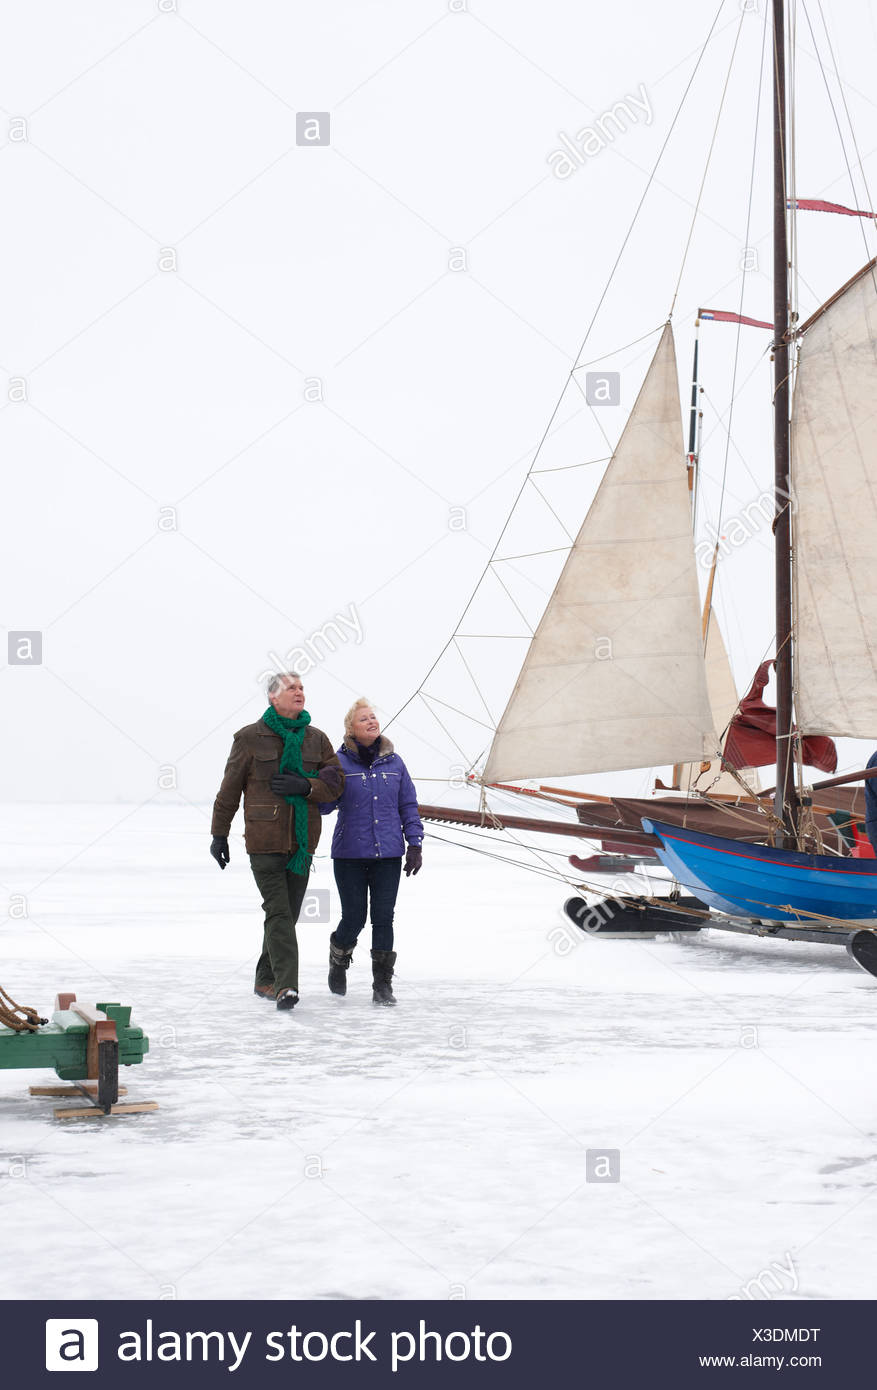 Senior couple walking on frozen lake near boats - Stock Image